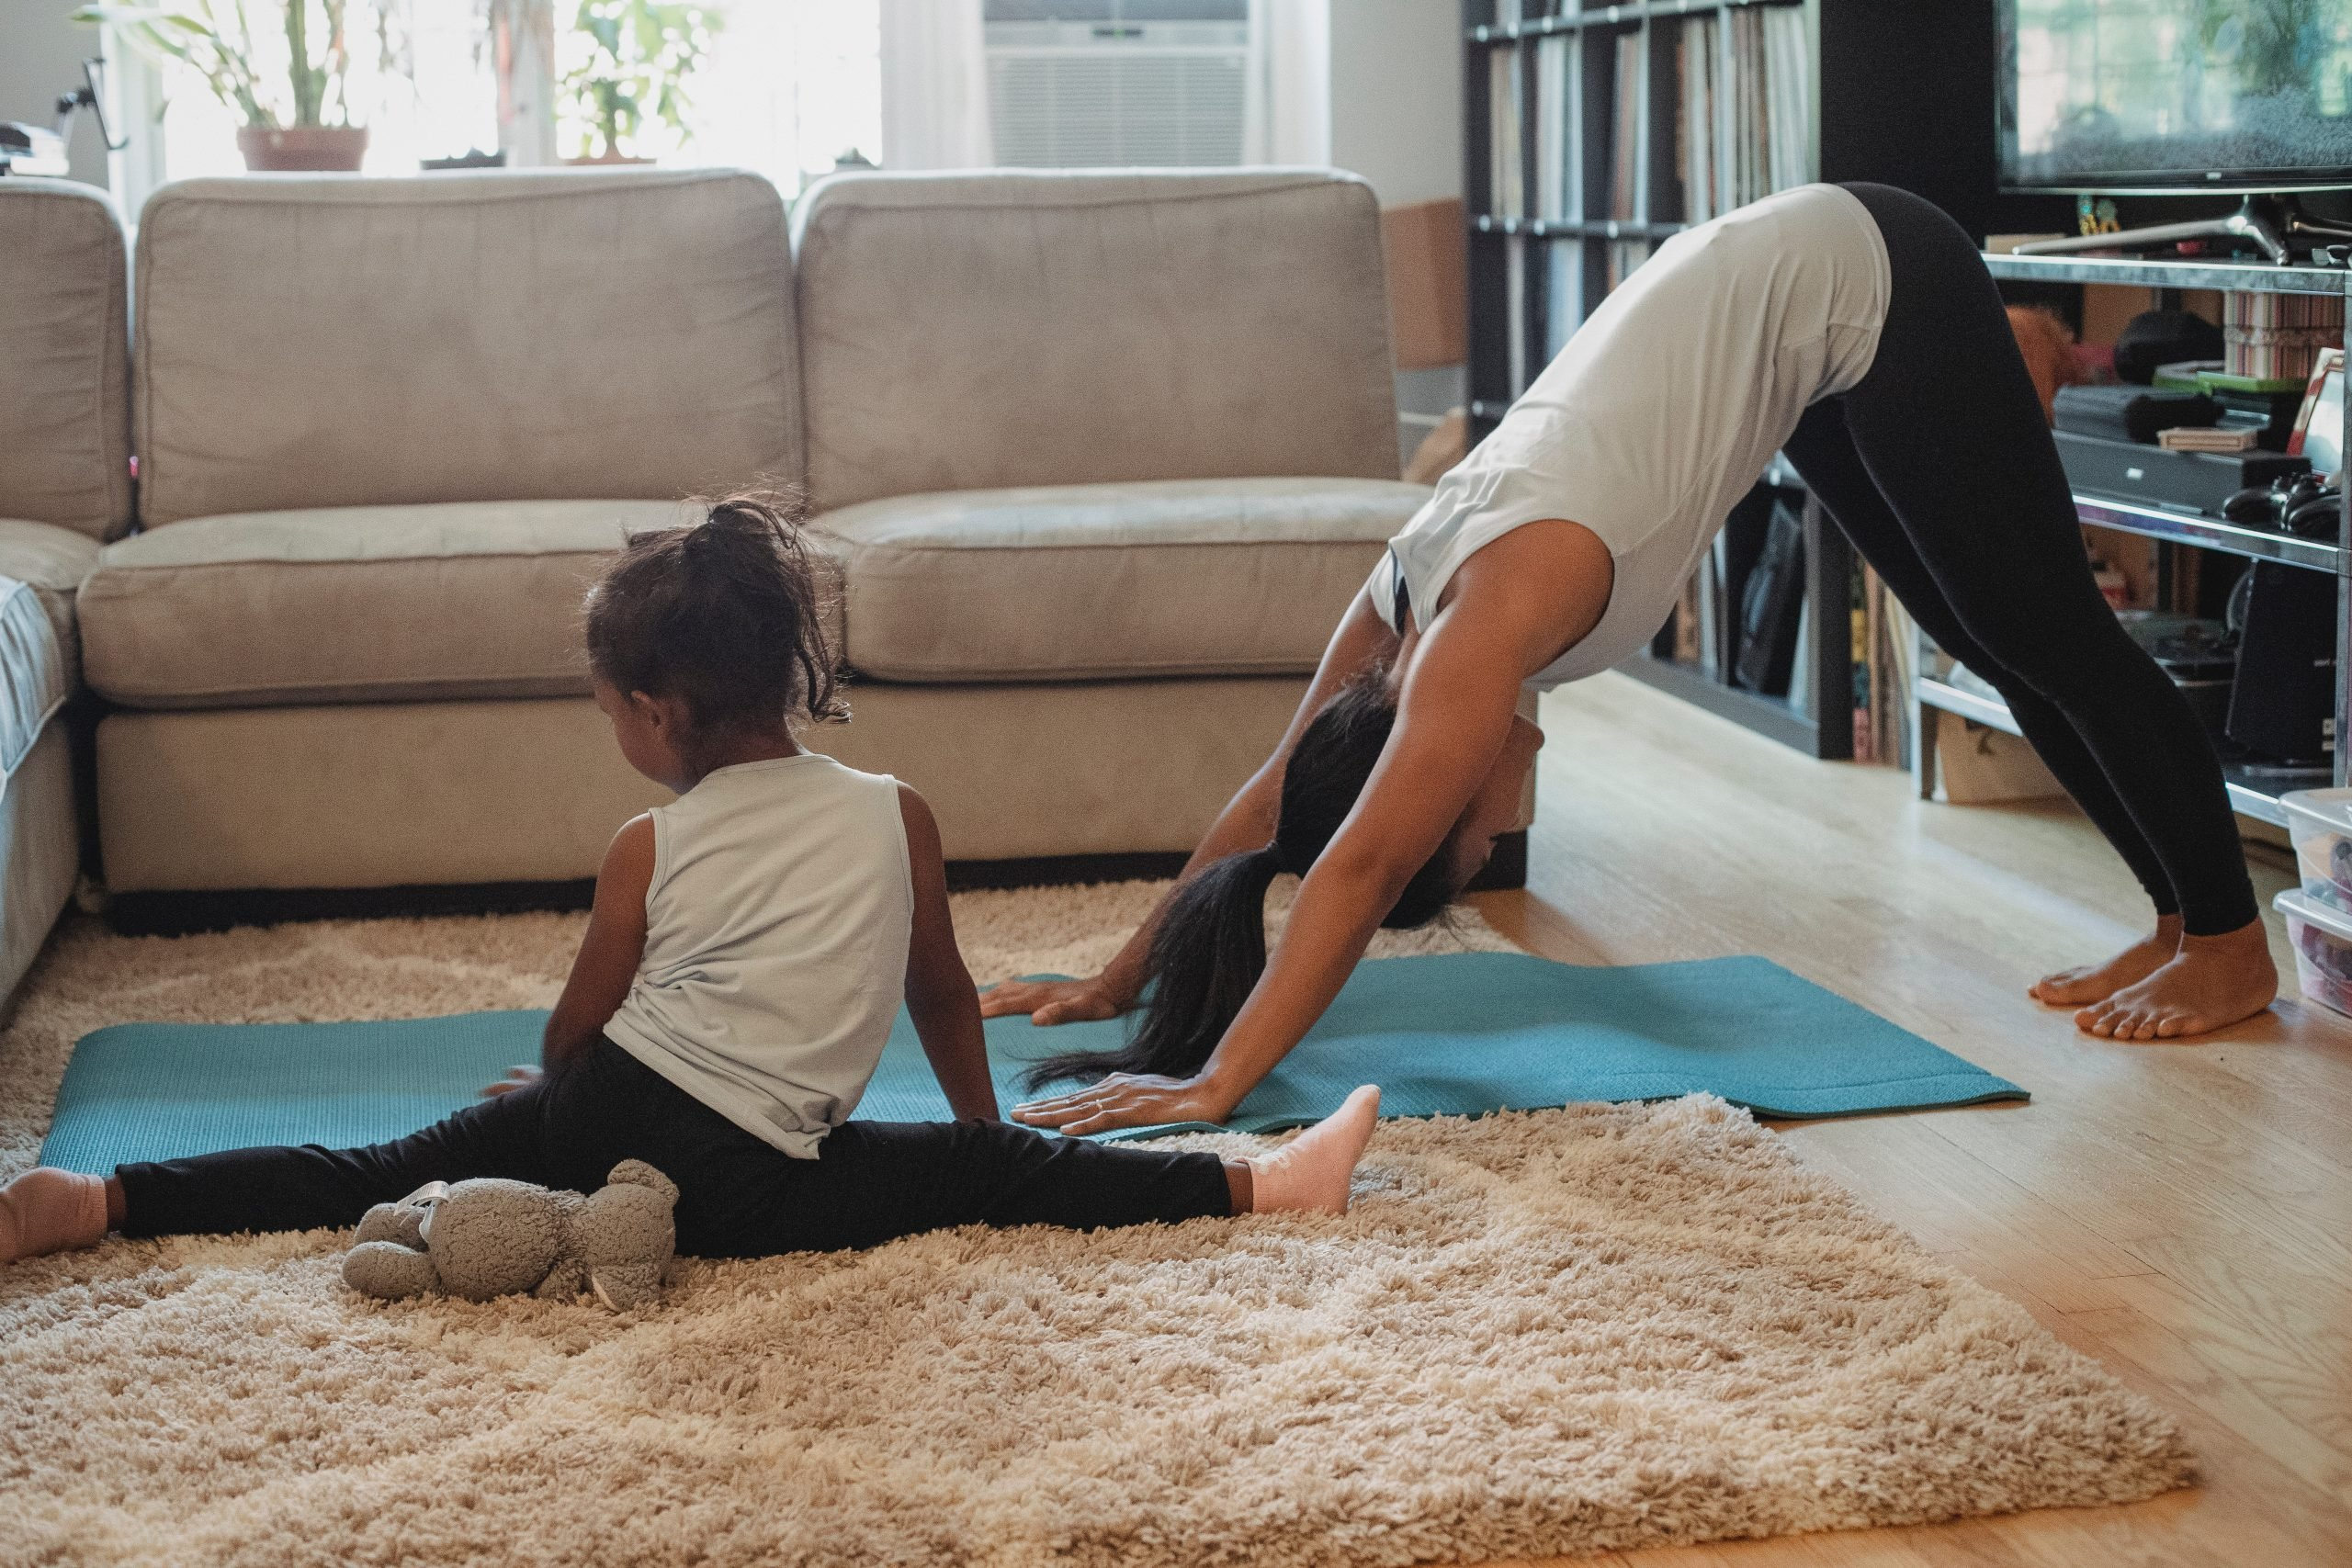 A mother and child exercising as one of the natural remedies for adhd.